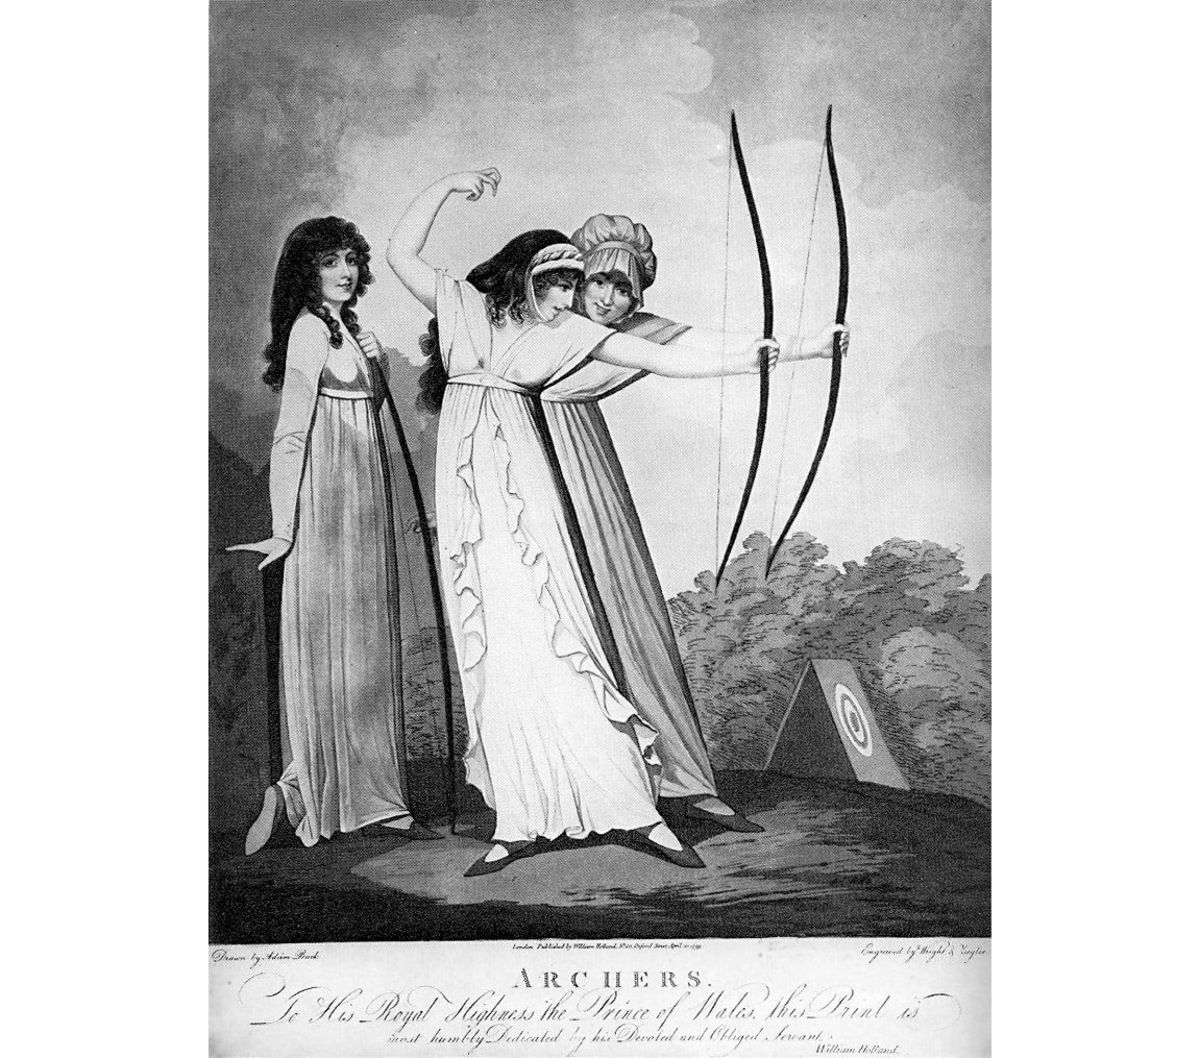 Engraved from a drawing by Adam Buck.  Archery was one of the few sports acceptable for genteel women at the time.